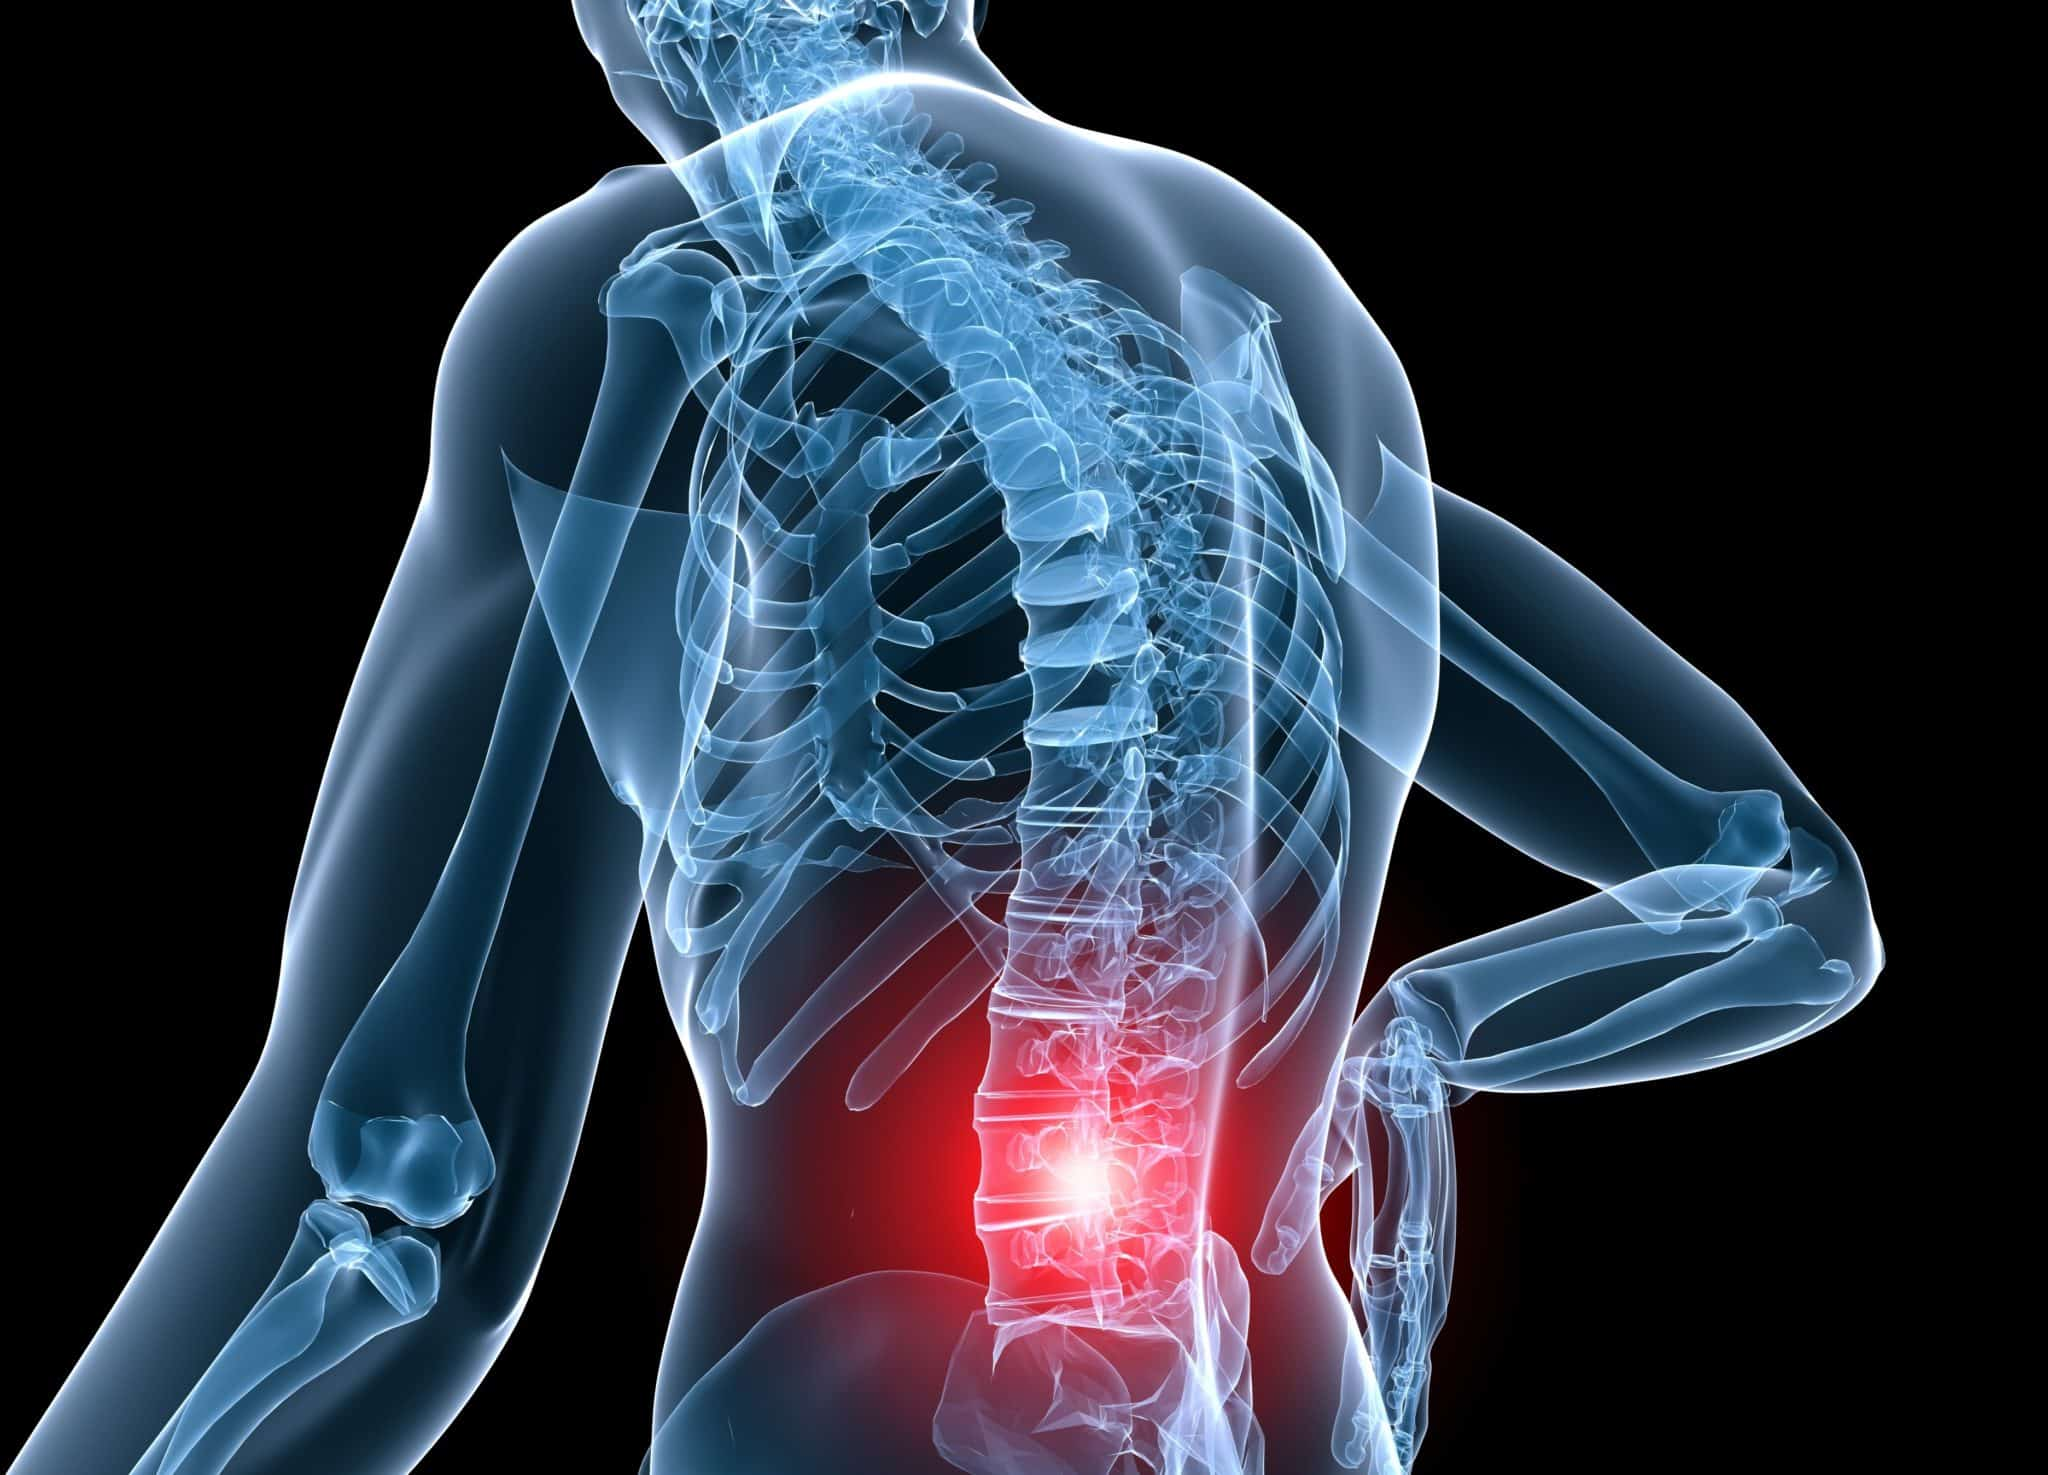 Surgery for Back Pain and Spinal Issues: Risks of Surgical Procedures